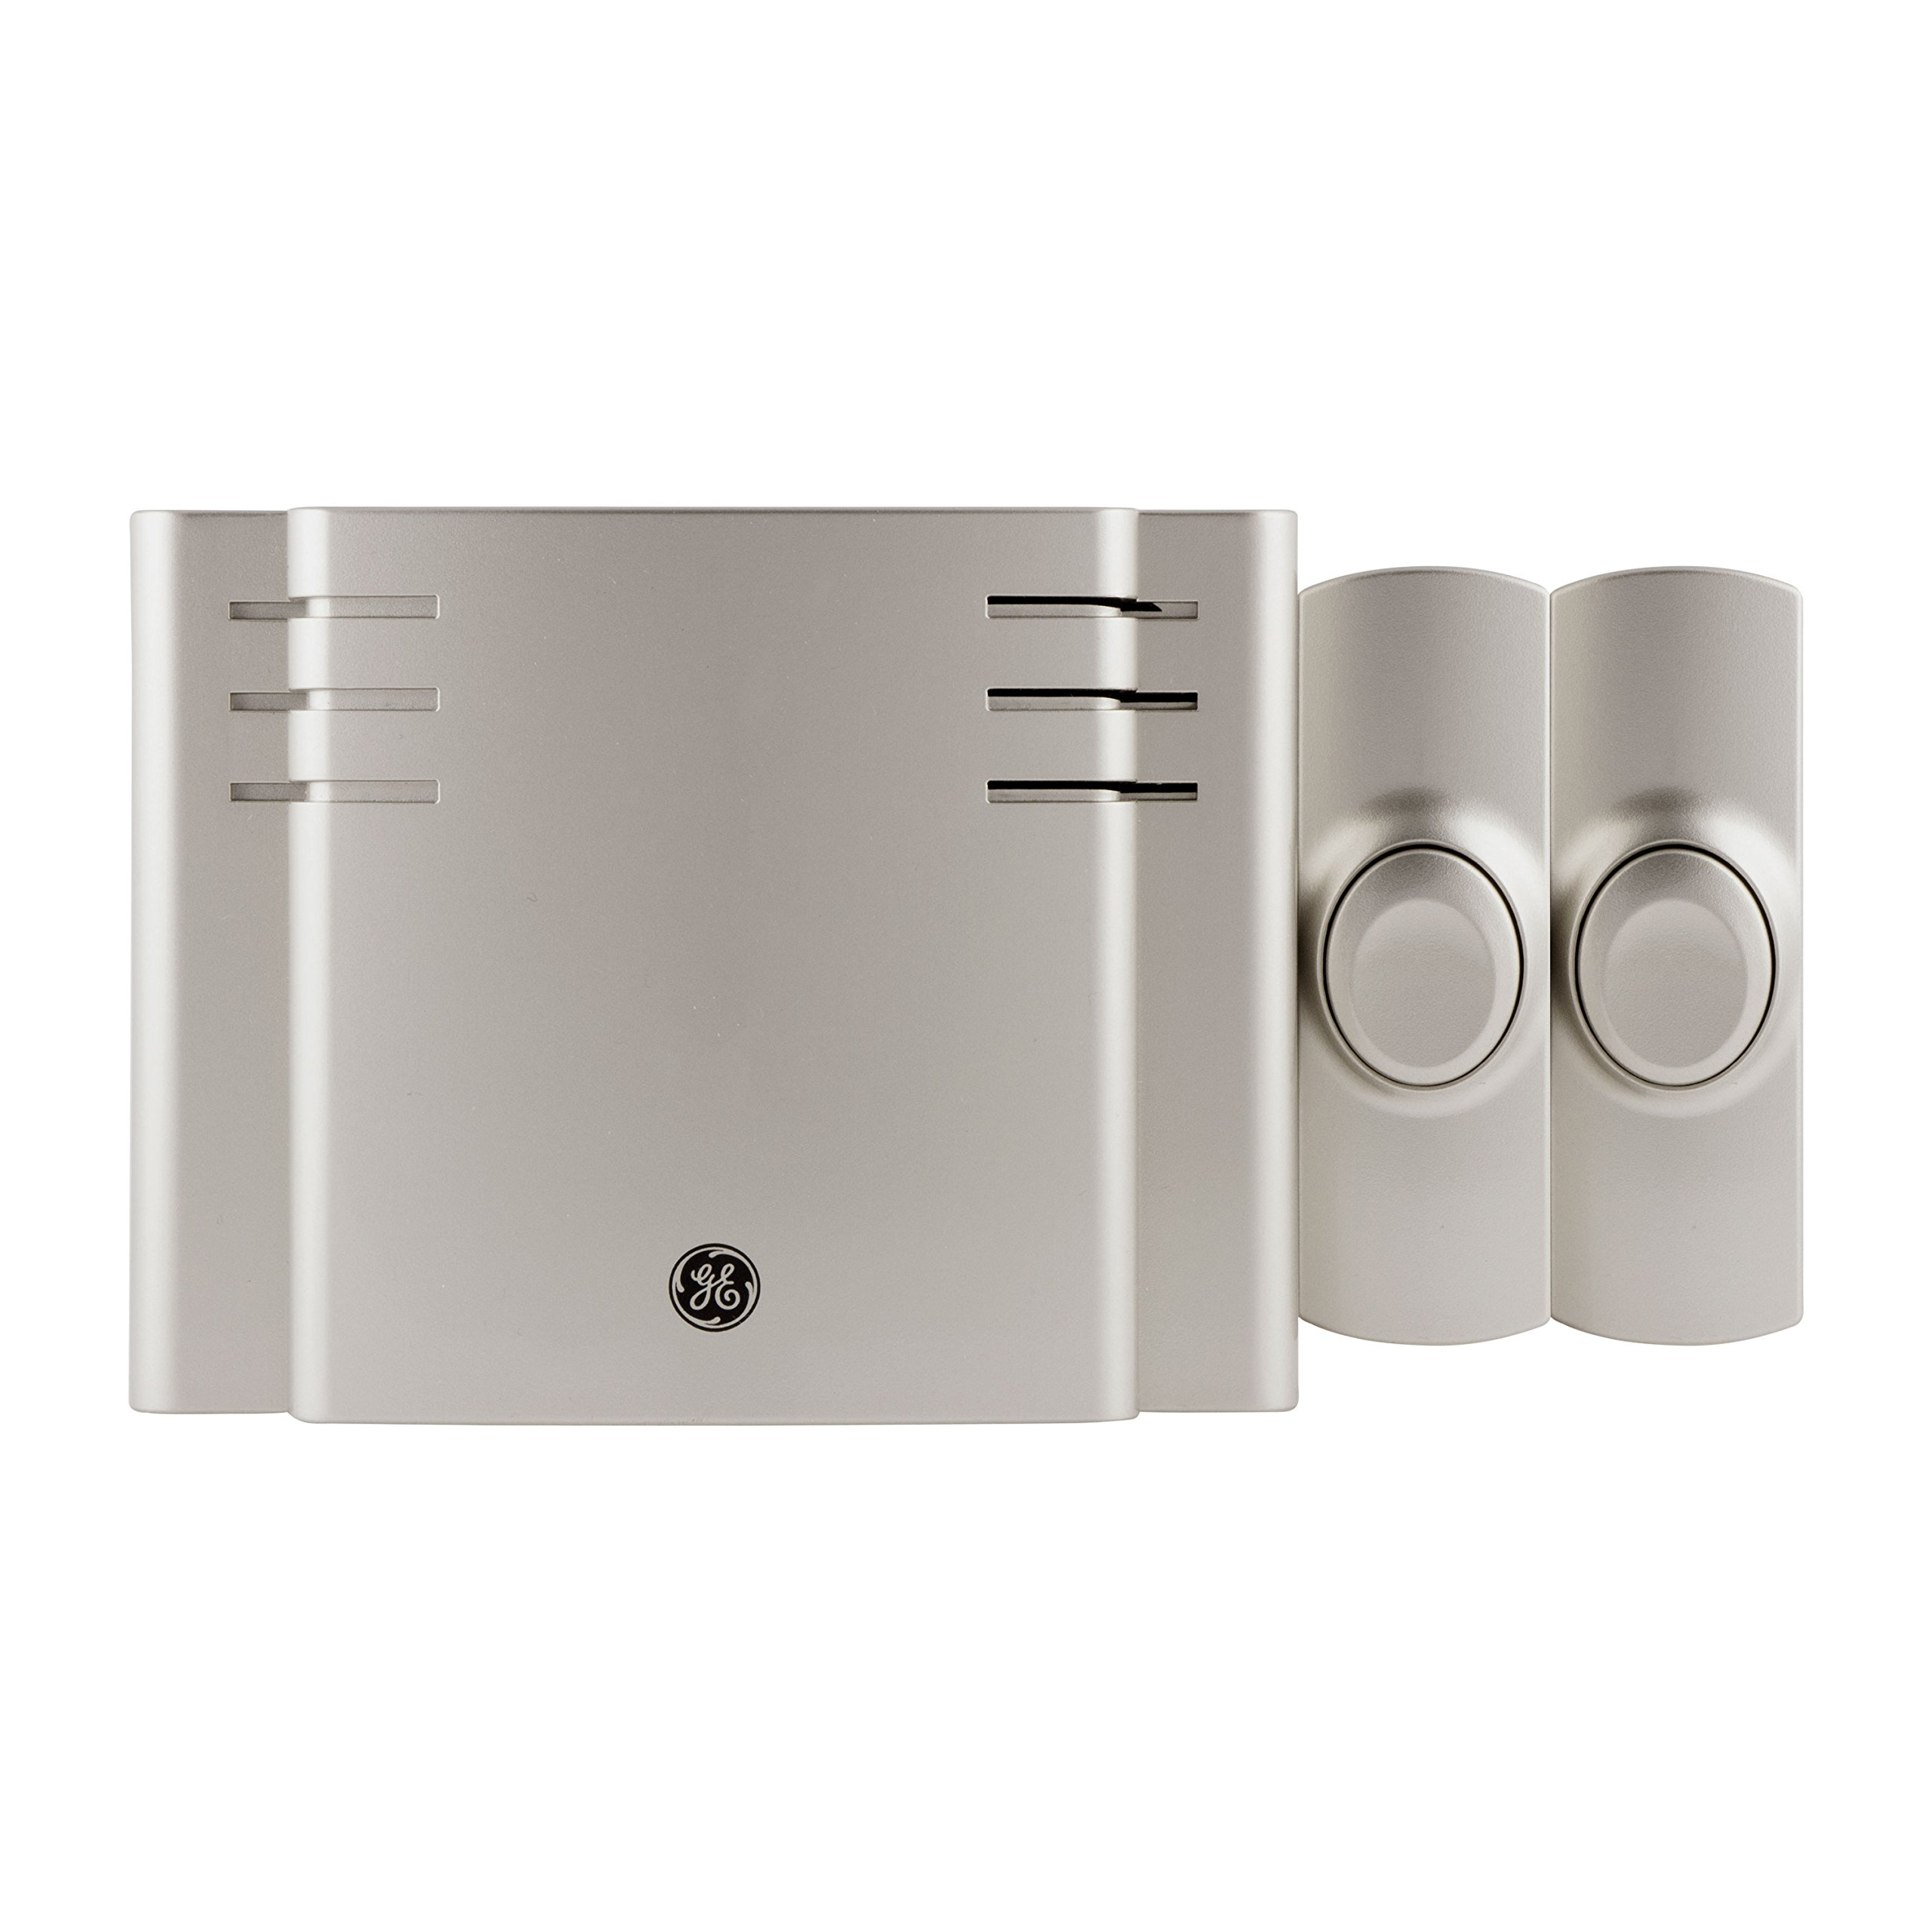 GE Wireless Doorbell Kit, 8 Melodies, 1 Receiver, 2 Push Buttons, Battery-Operated, 150 Feet Range, Satin Nickel, 30393